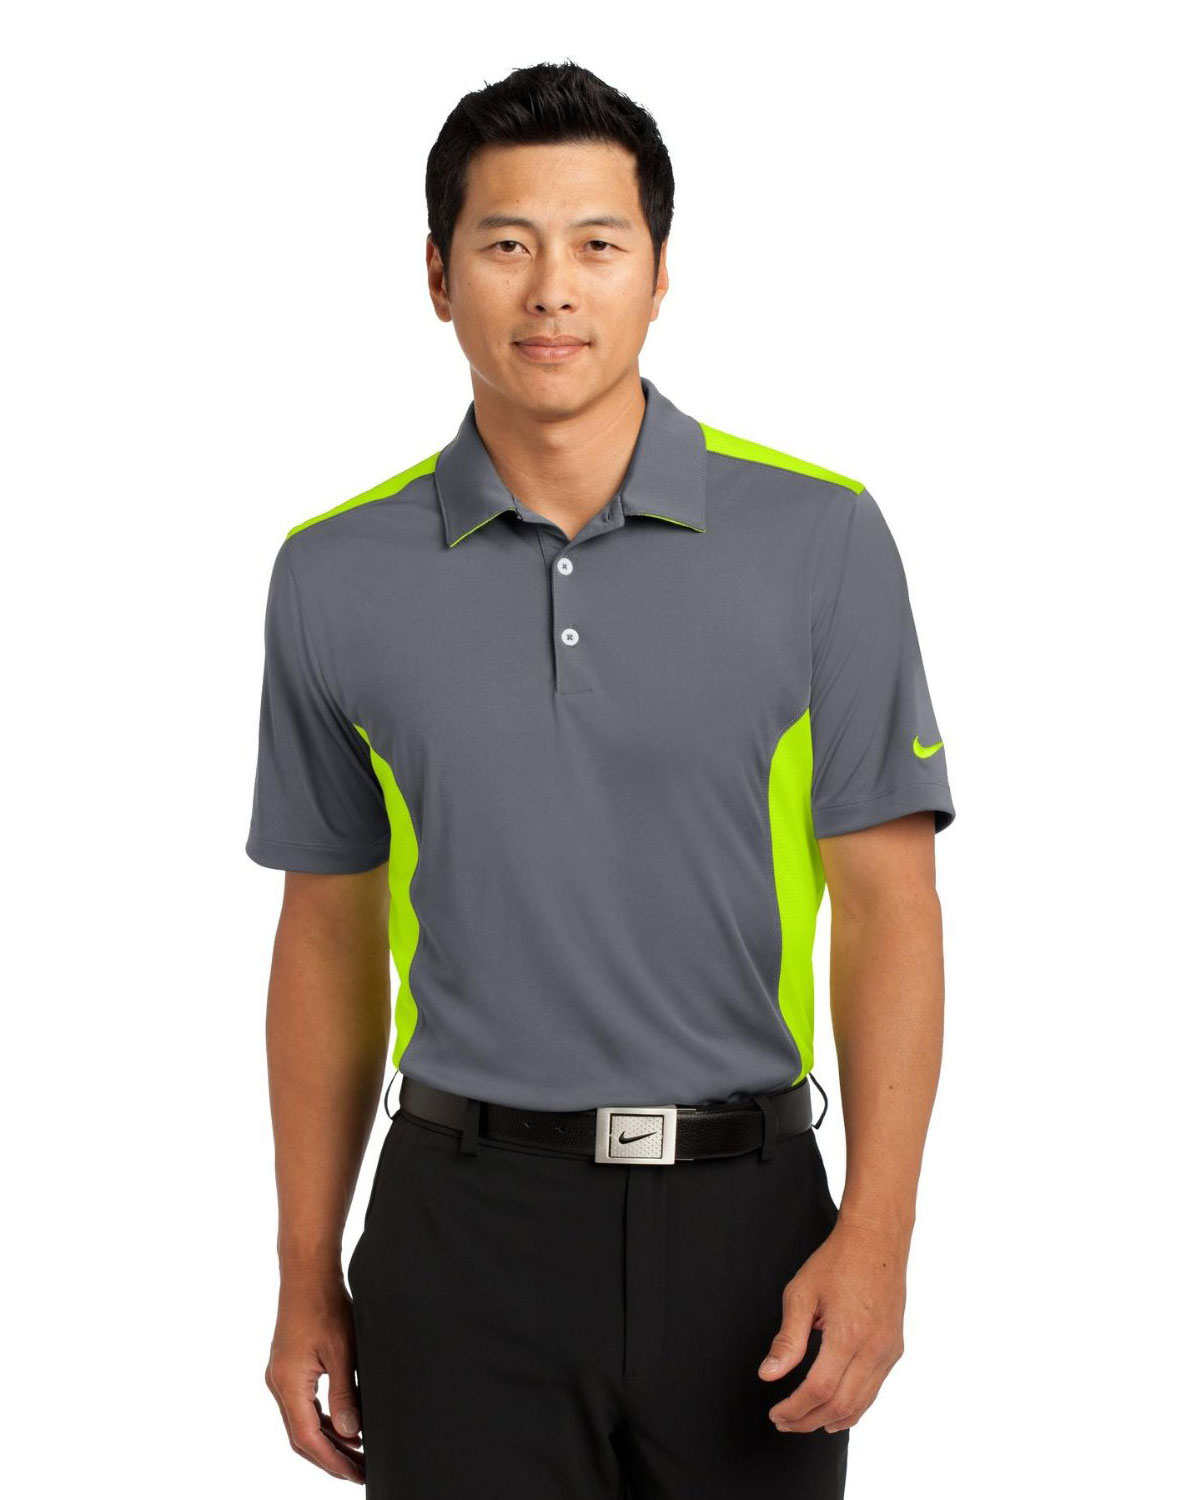 Nike Top Of The Line Corporate Apparel Verified Label